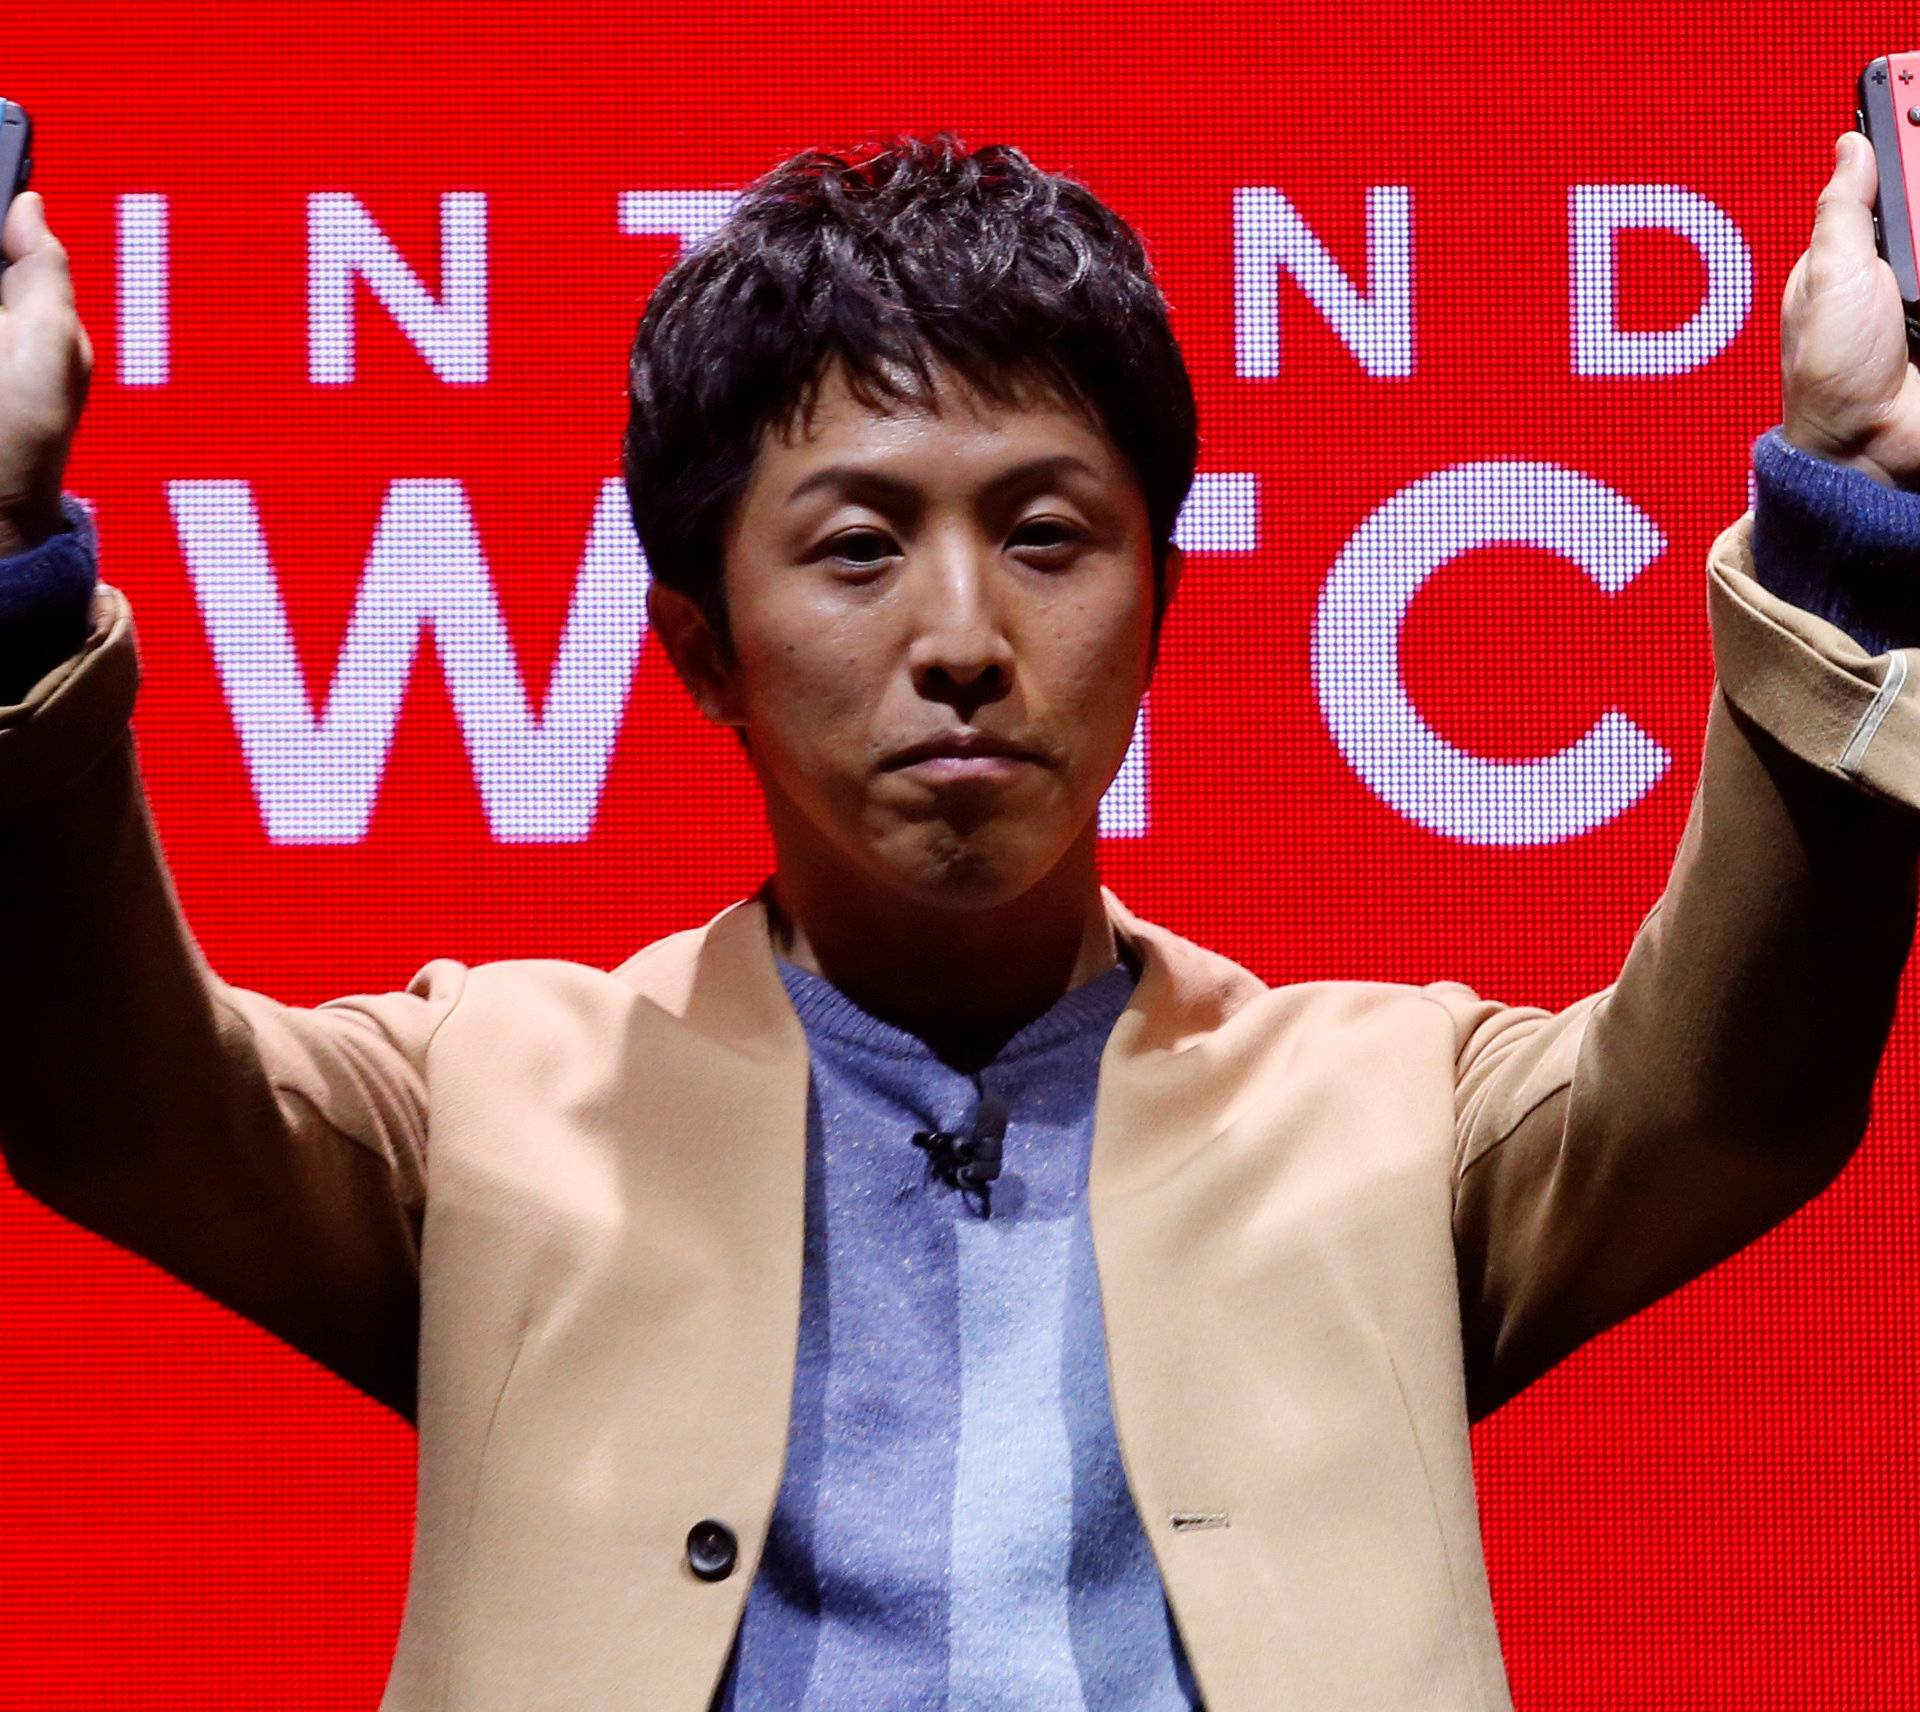 Nintendo Switch General Director Kouichi Kawamoto introduces the Switch, Nintendo's new game console, at a presentation ceremony in Tokyo